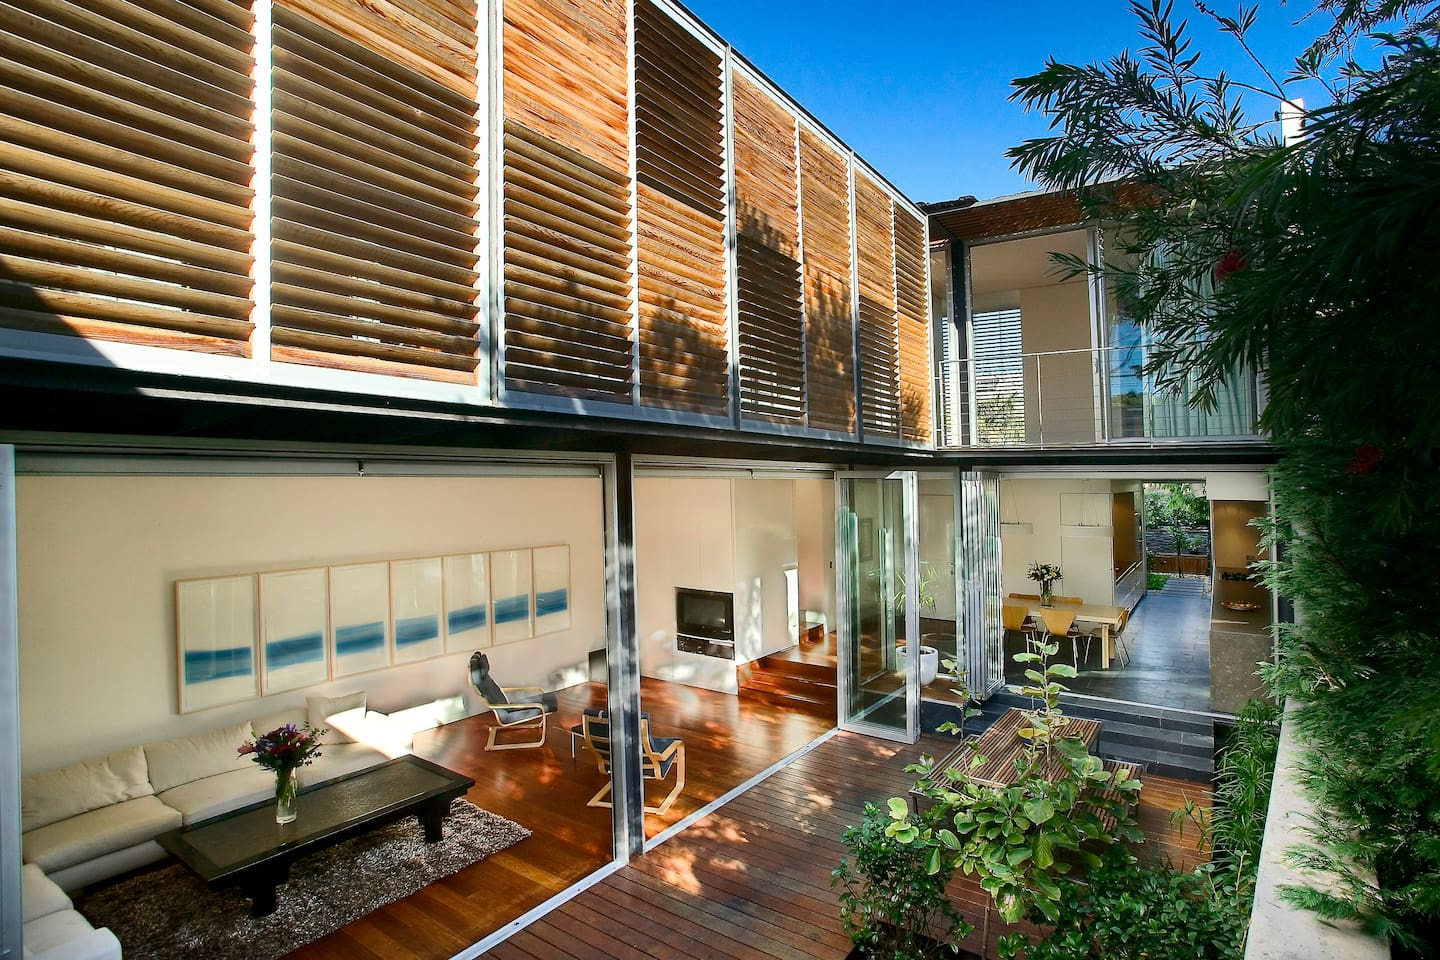 architects own central sydney home airbnb sydney